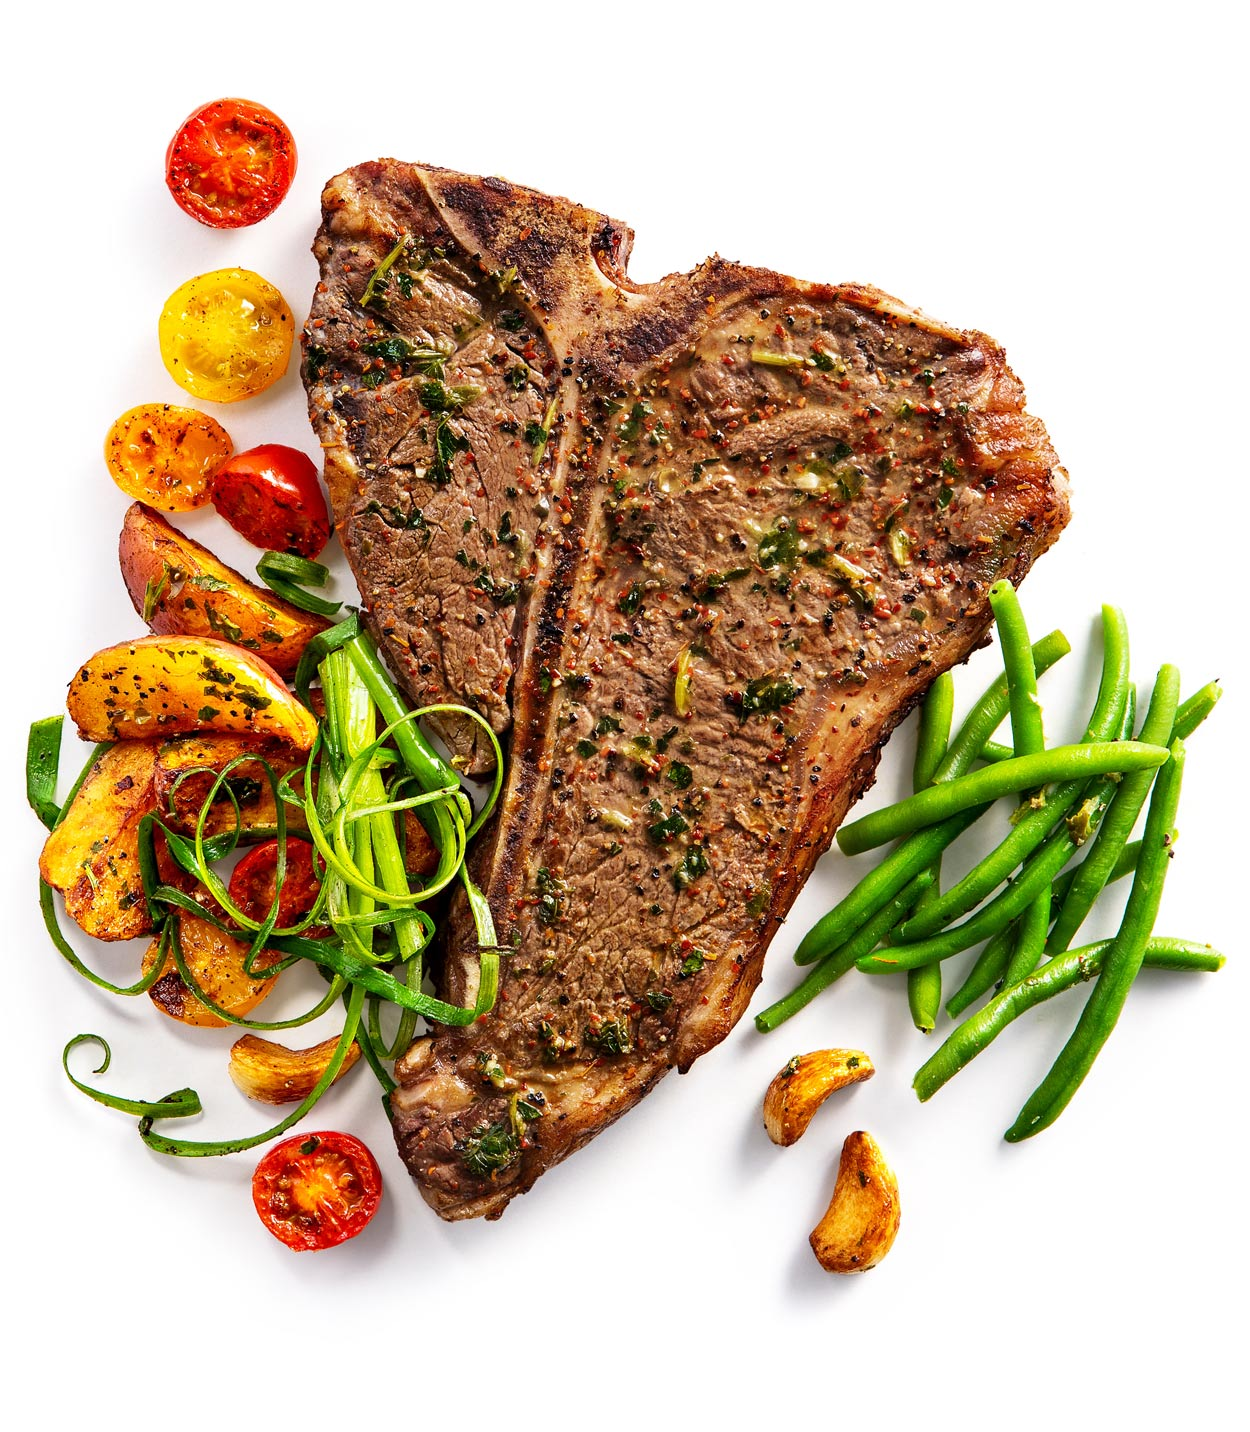 Grilled T-bone steak for Festival Foods